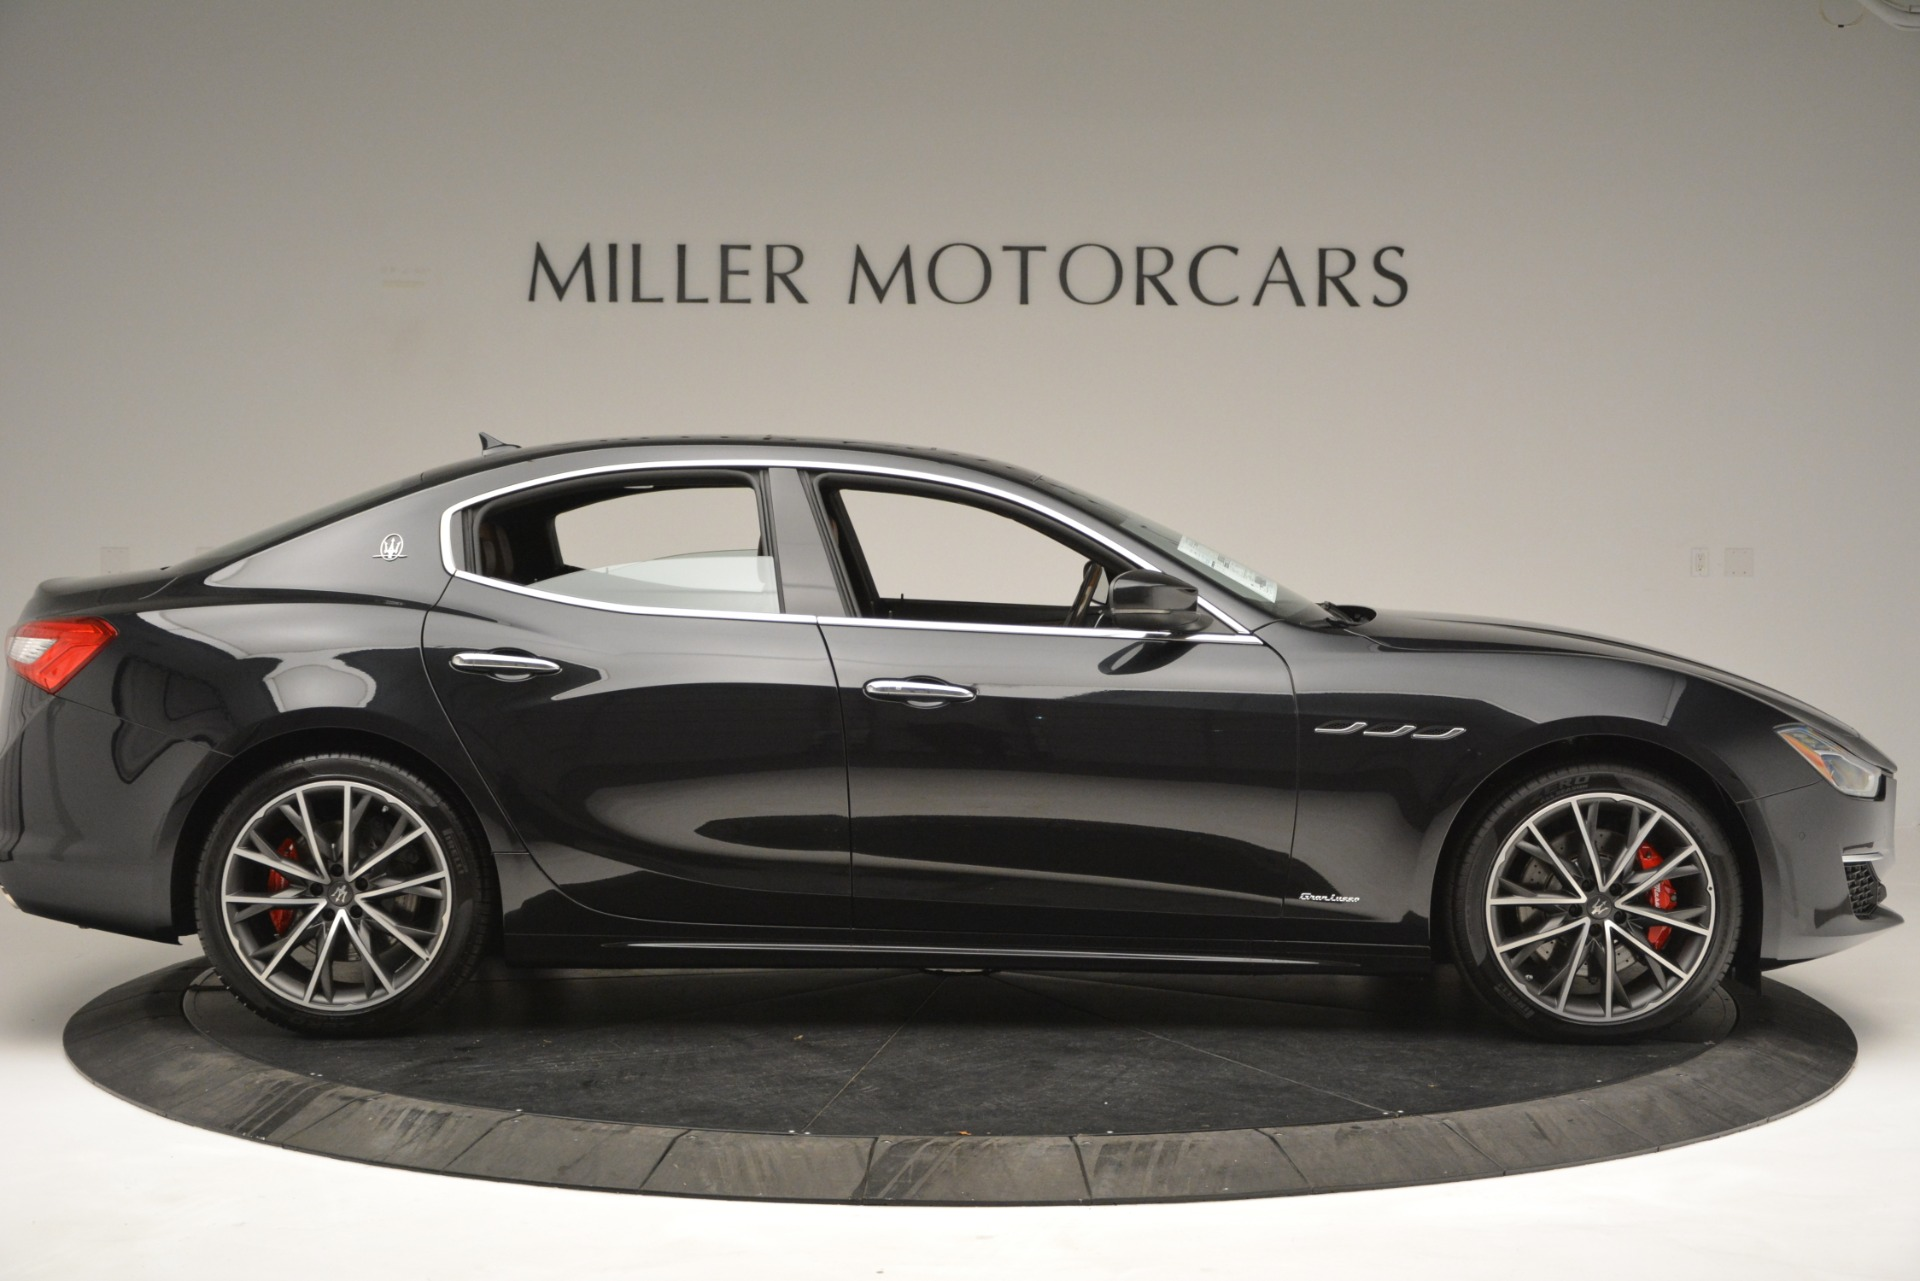 New 2019 Maserati Ghibli S Q4 GranLusso For Sale In Greenwich, CT. Alfa Romeo of Greenwich, M2222 2589_p9